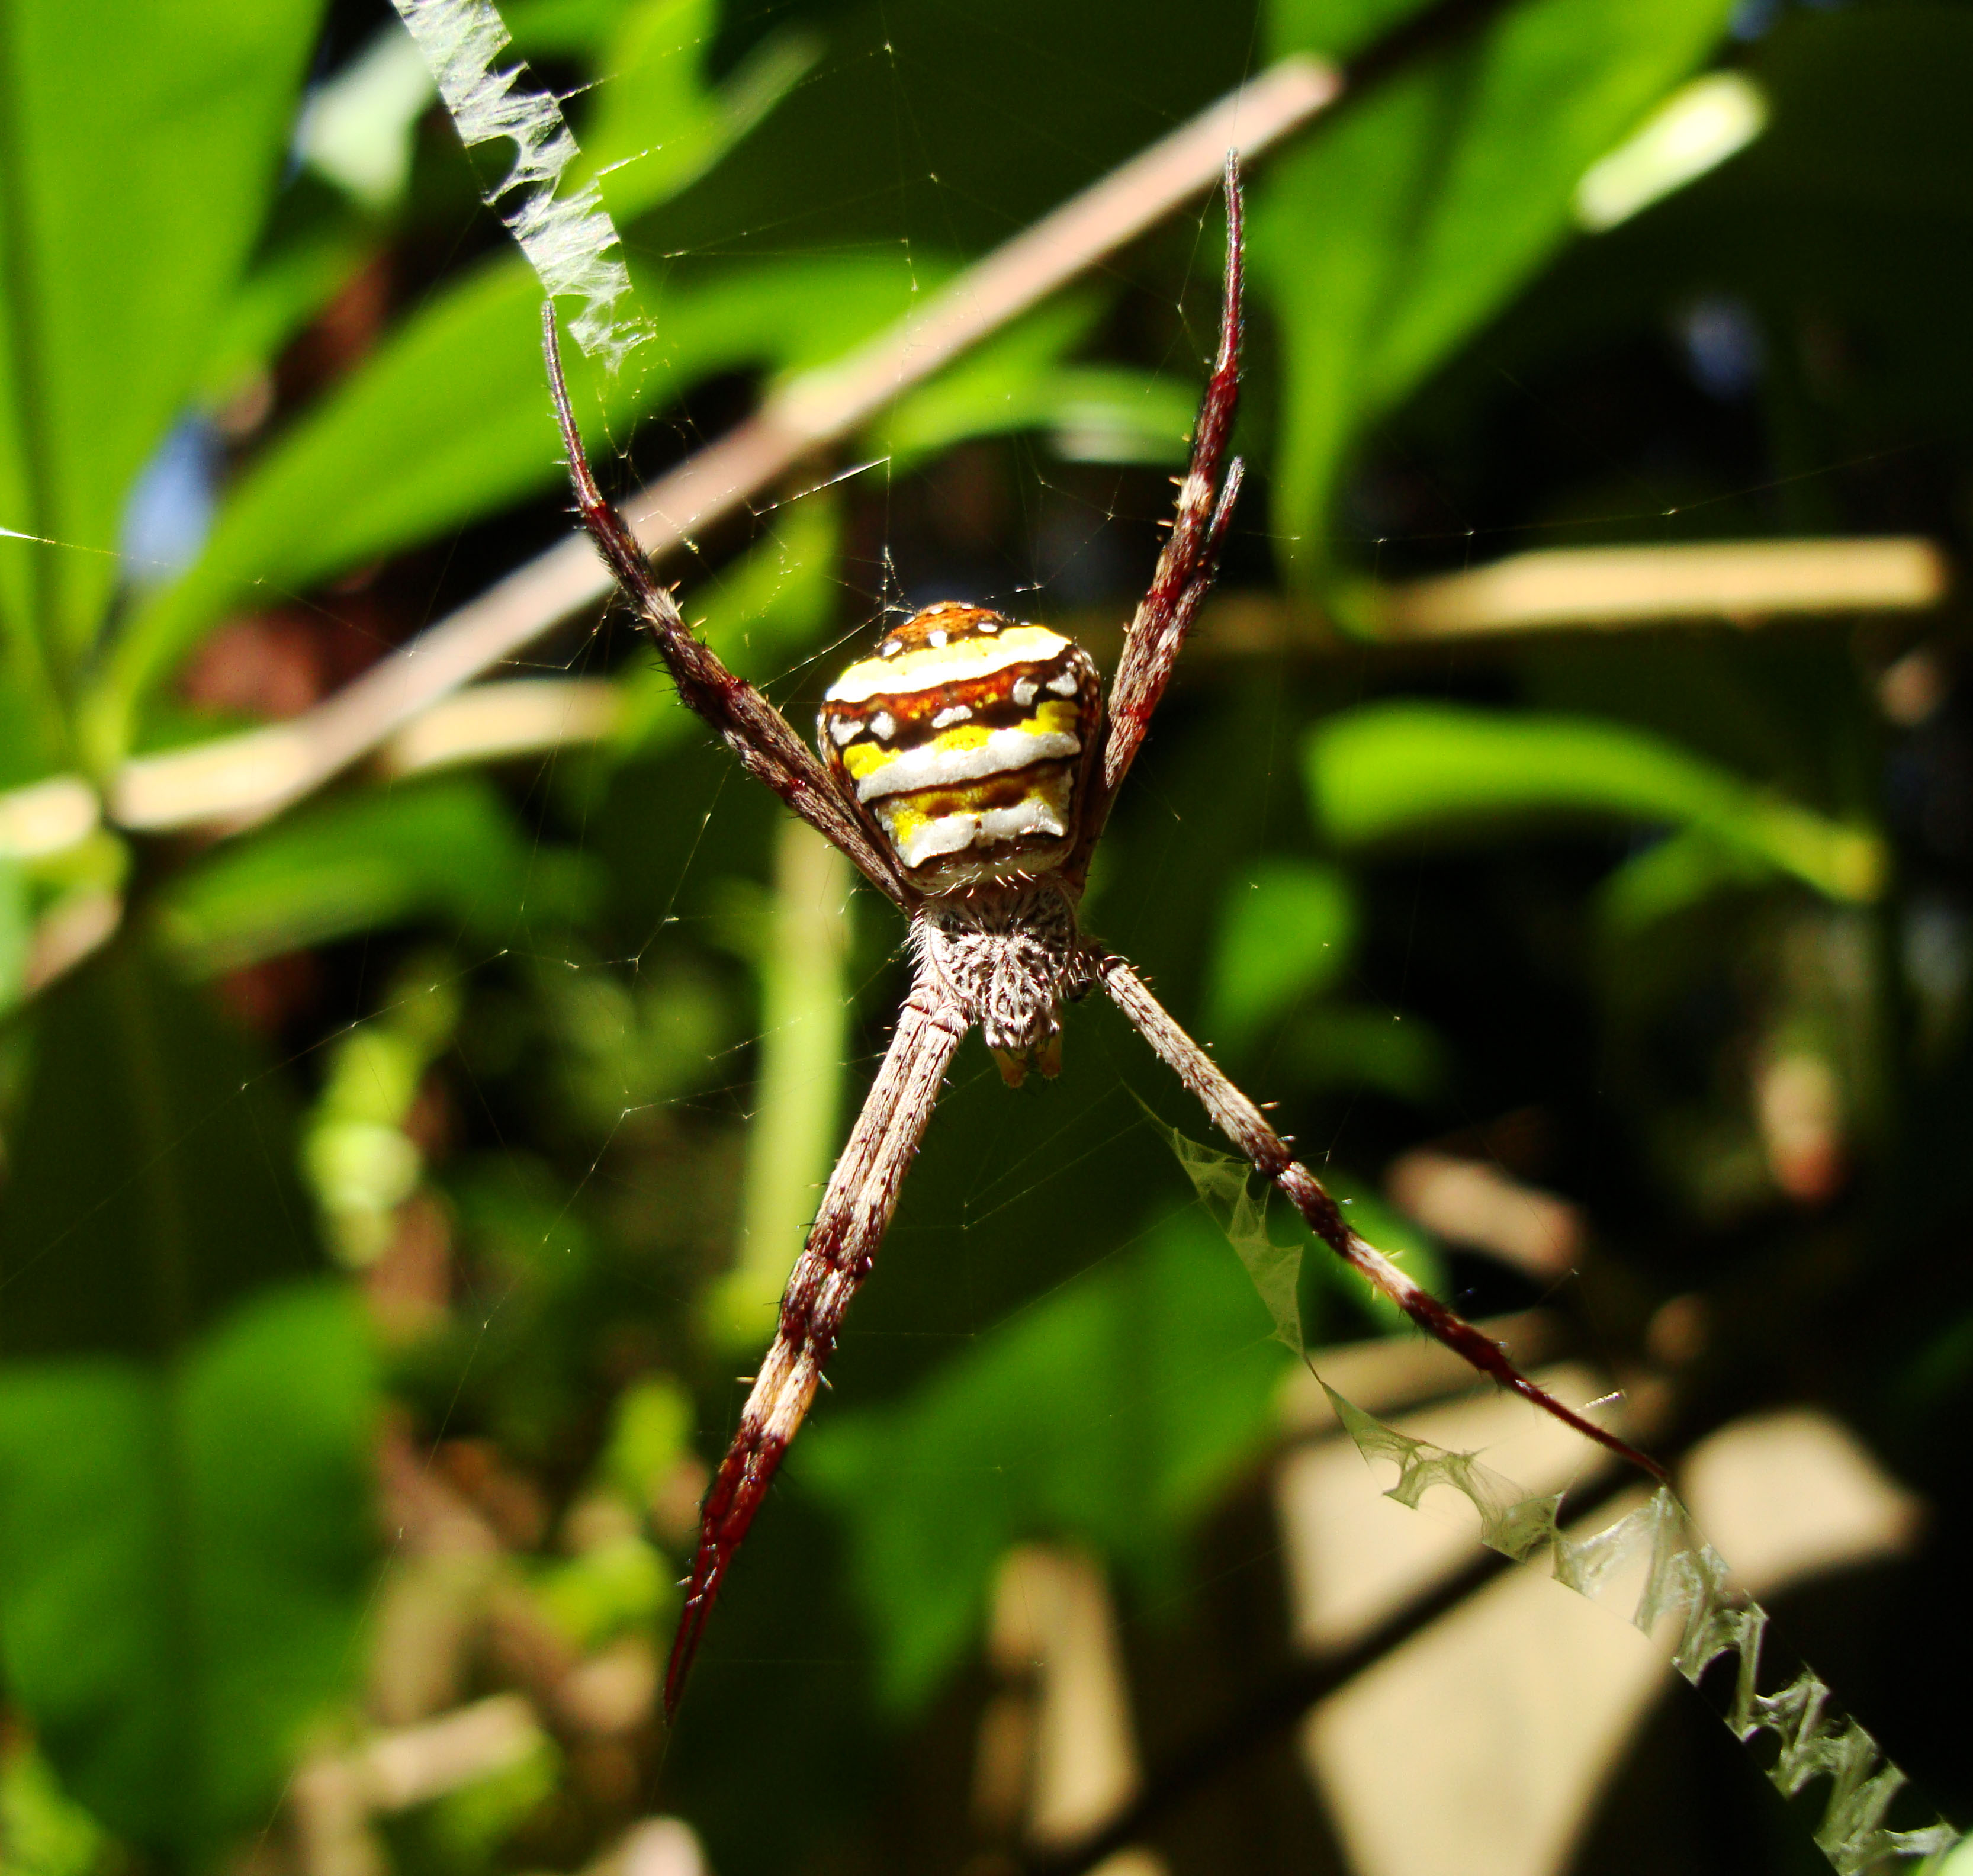 Saint Andrews Cross Spider Marcus Beach Sunshine Coast Qld Australia 06